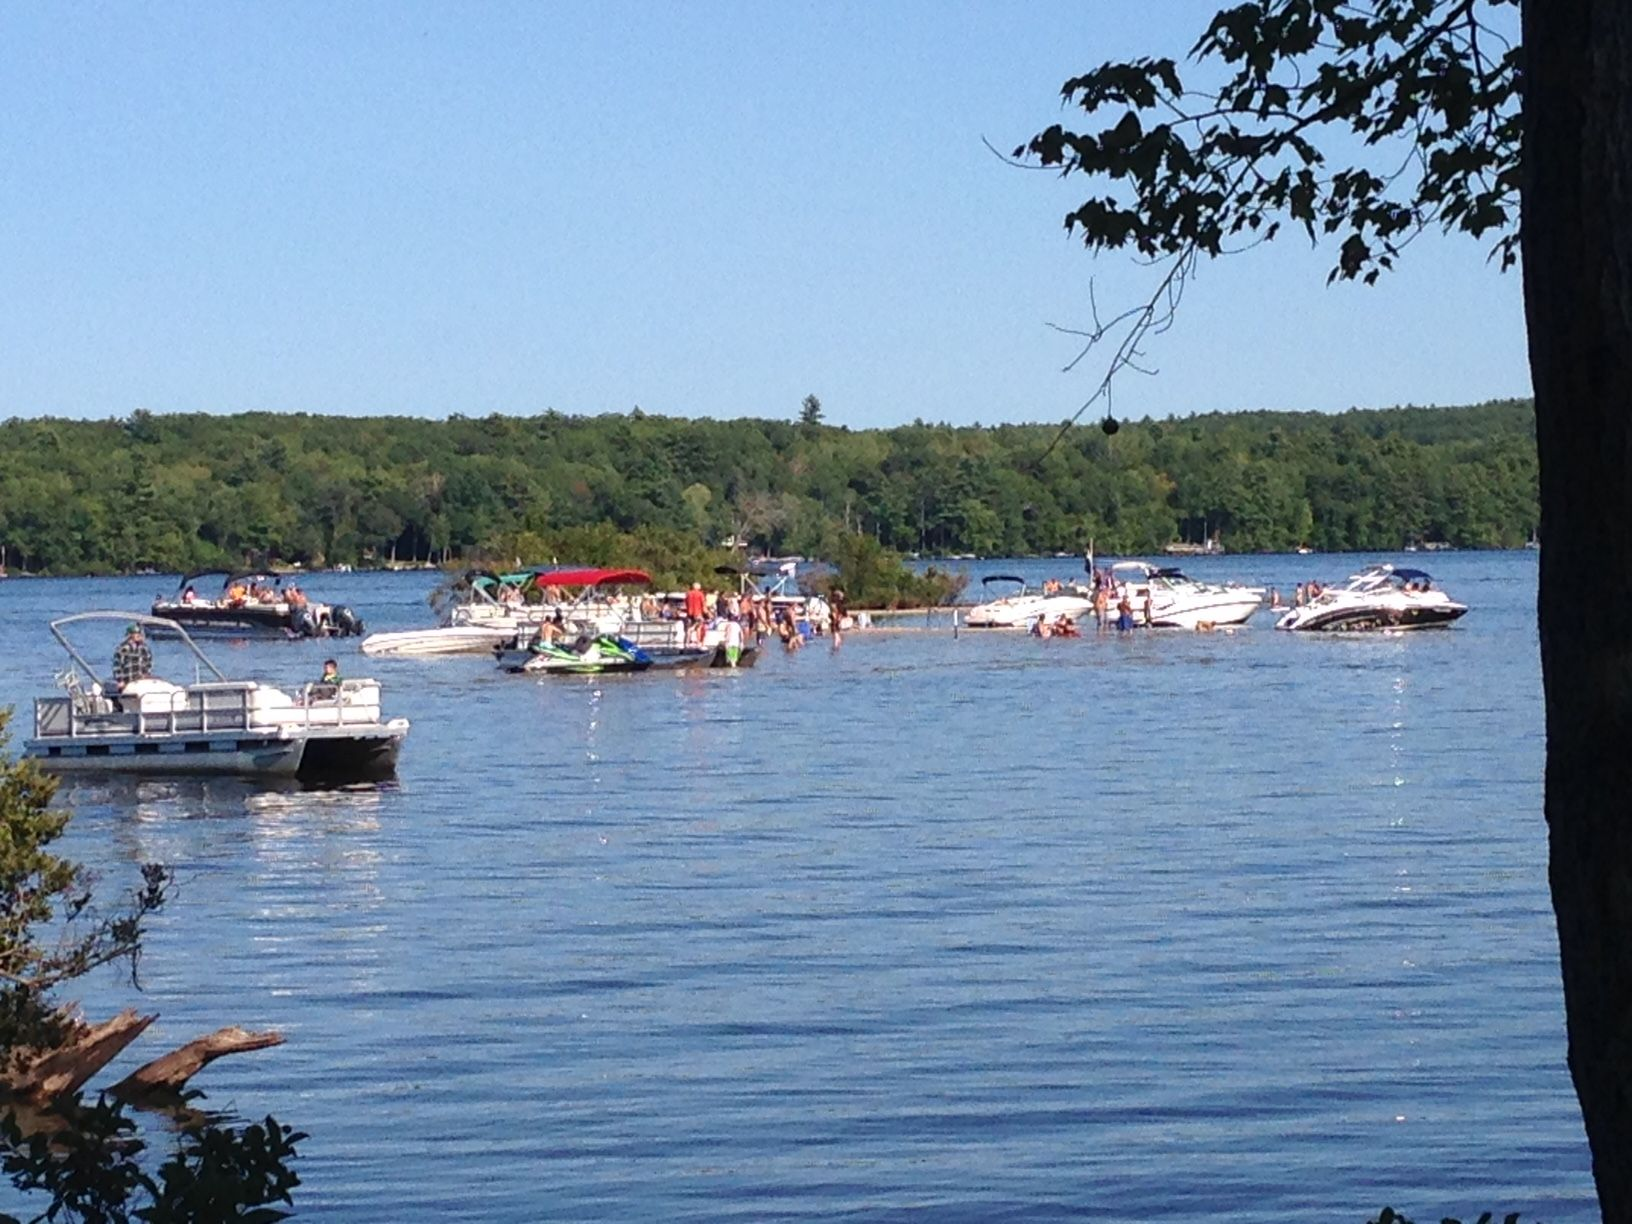 Partiers out on the sand bar. No wonder the loons are alarmed!